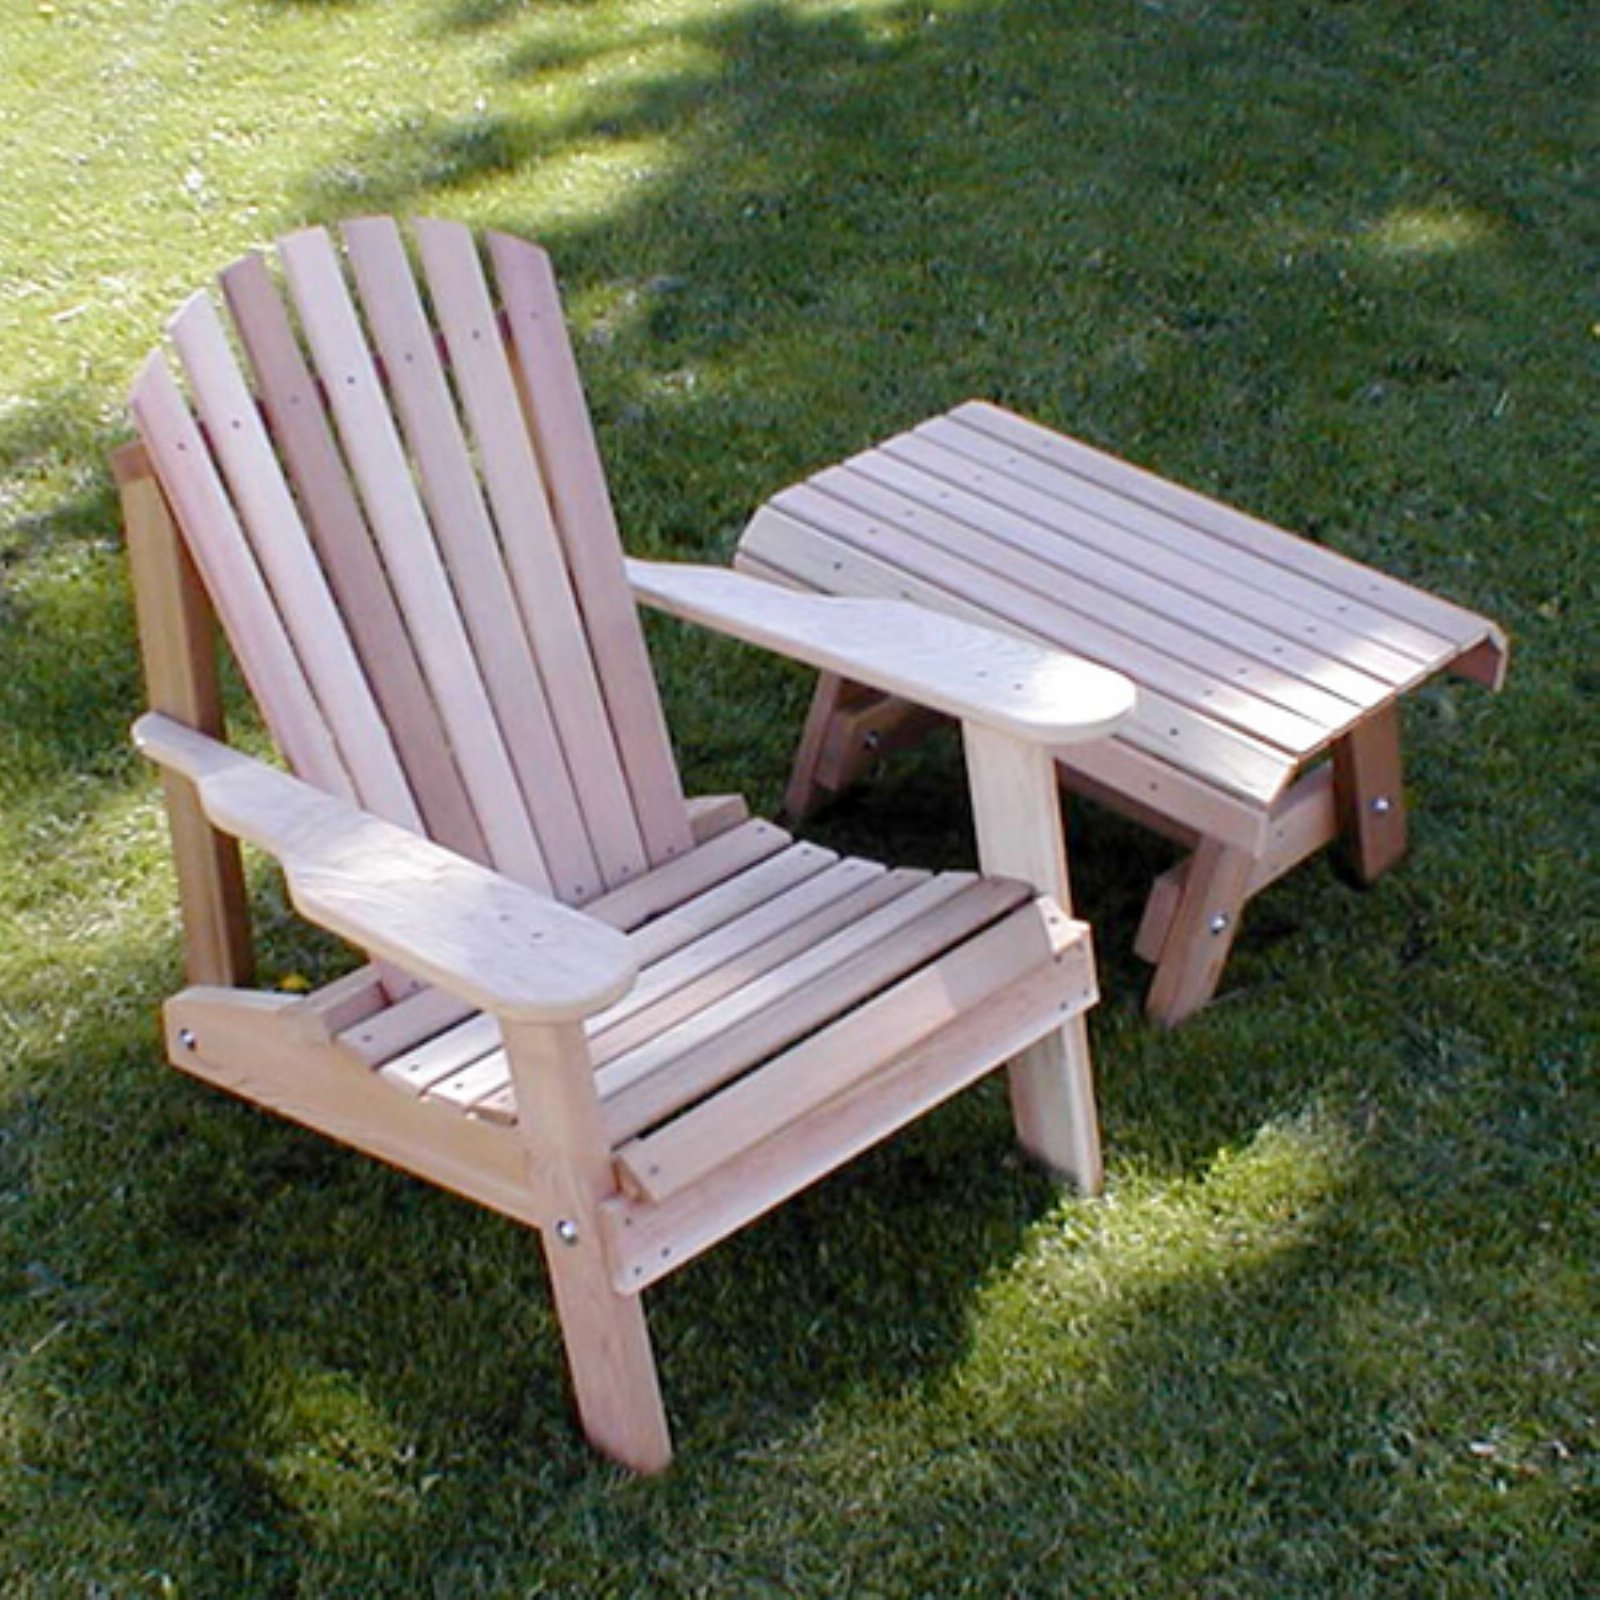 Creekvine Designs American Forest Cedar Adirondack Chair and Table 2 pc. Set